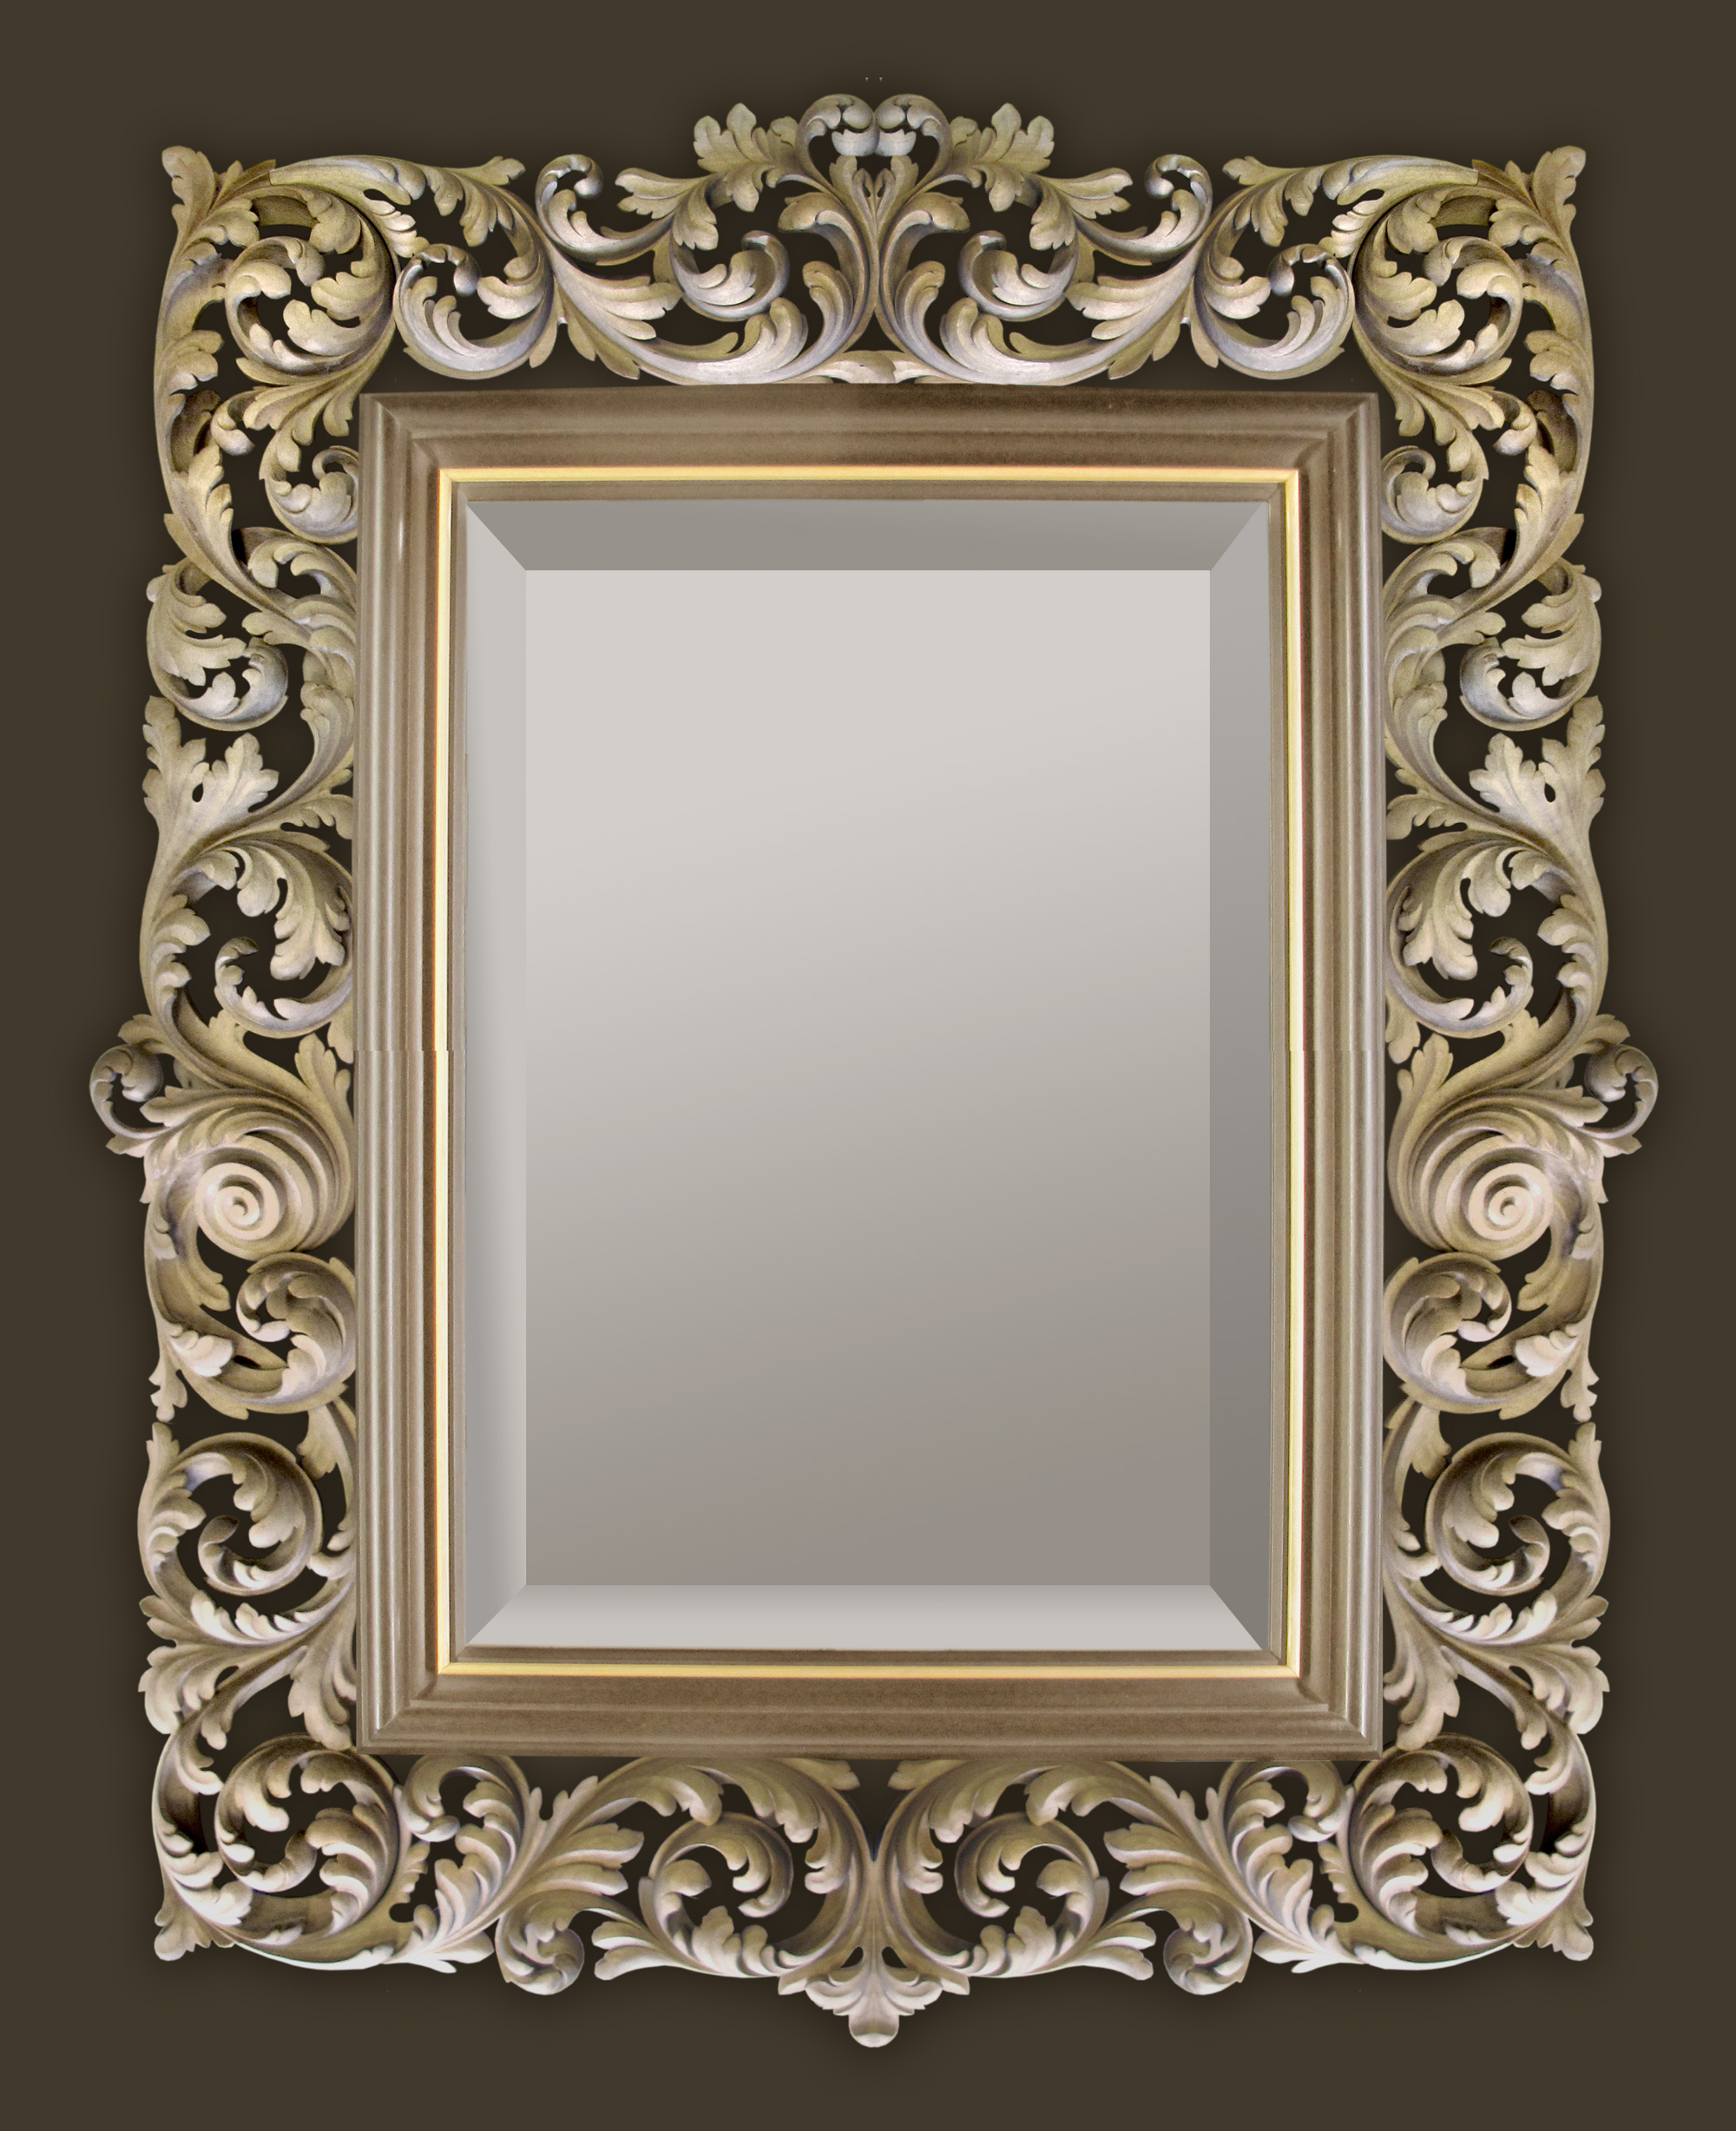 Sia royalframes frames sia royalframes frames jeuxipadfo Images